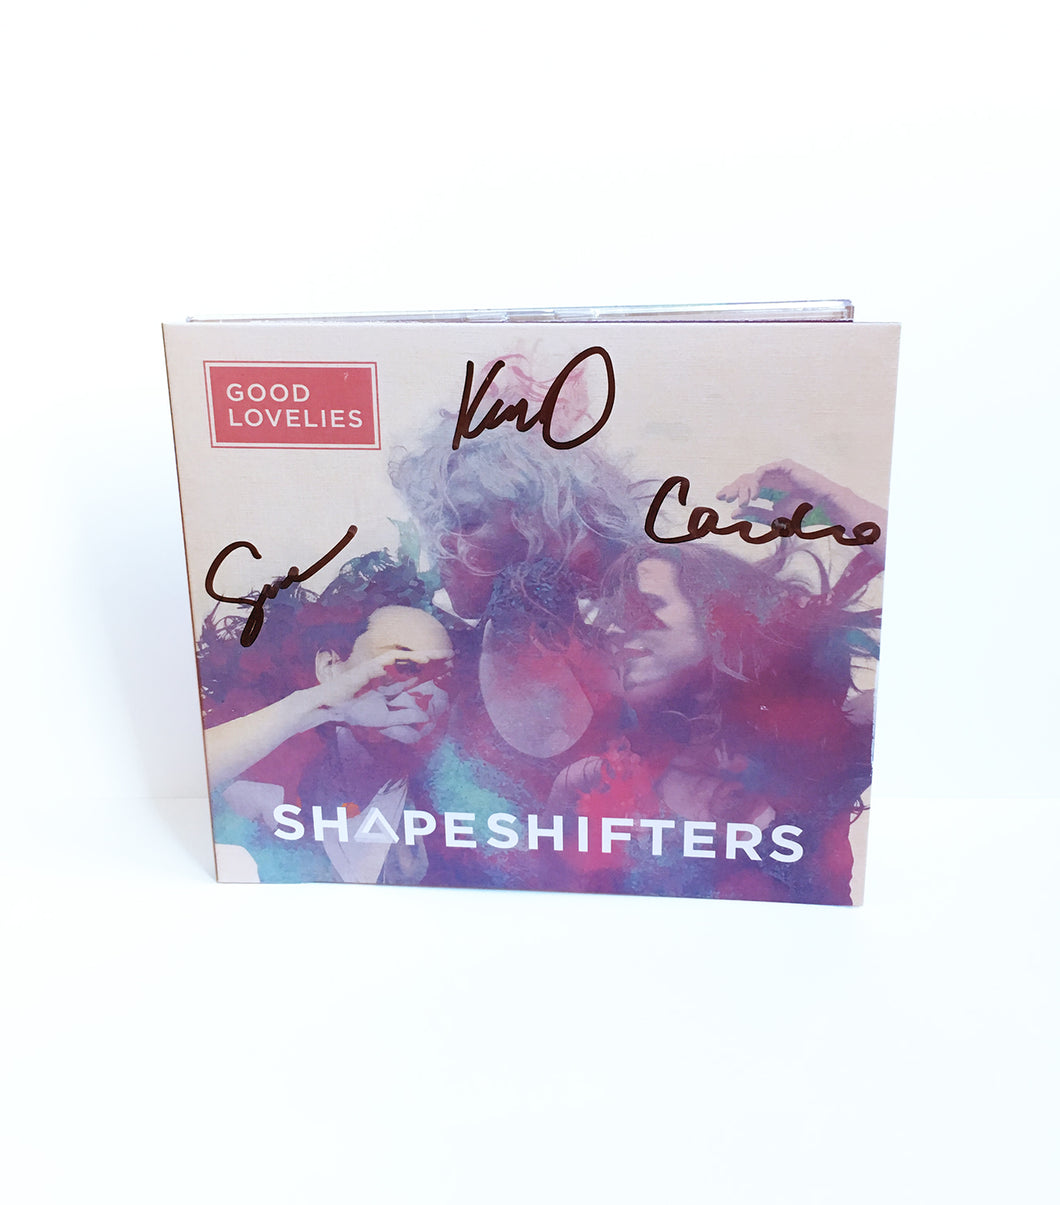 SIGNED Shapeshifters CD